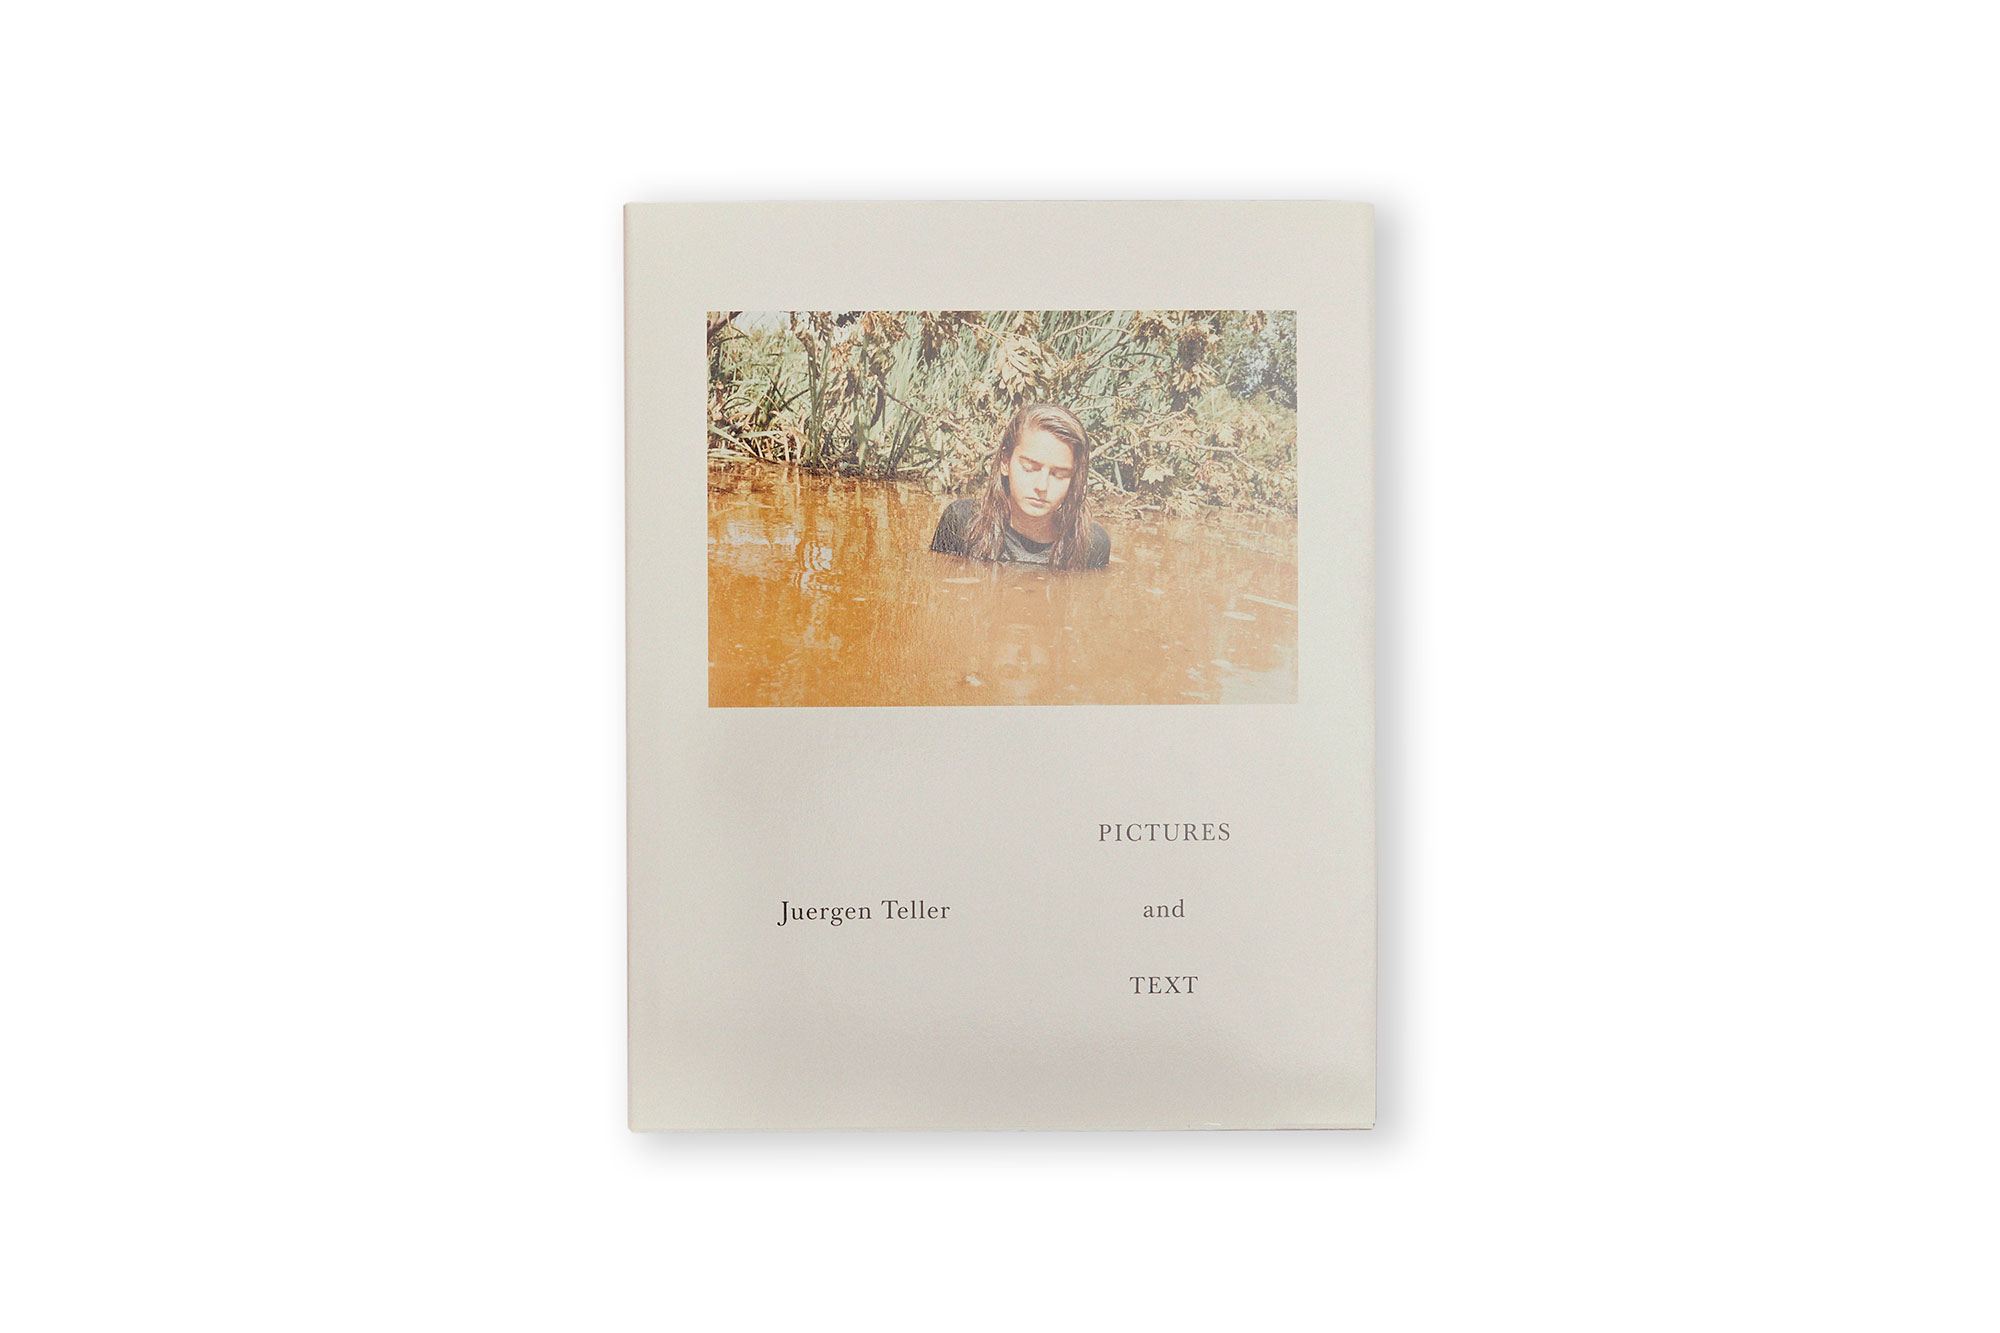 PICTURES AND TEXT, juergen teller.